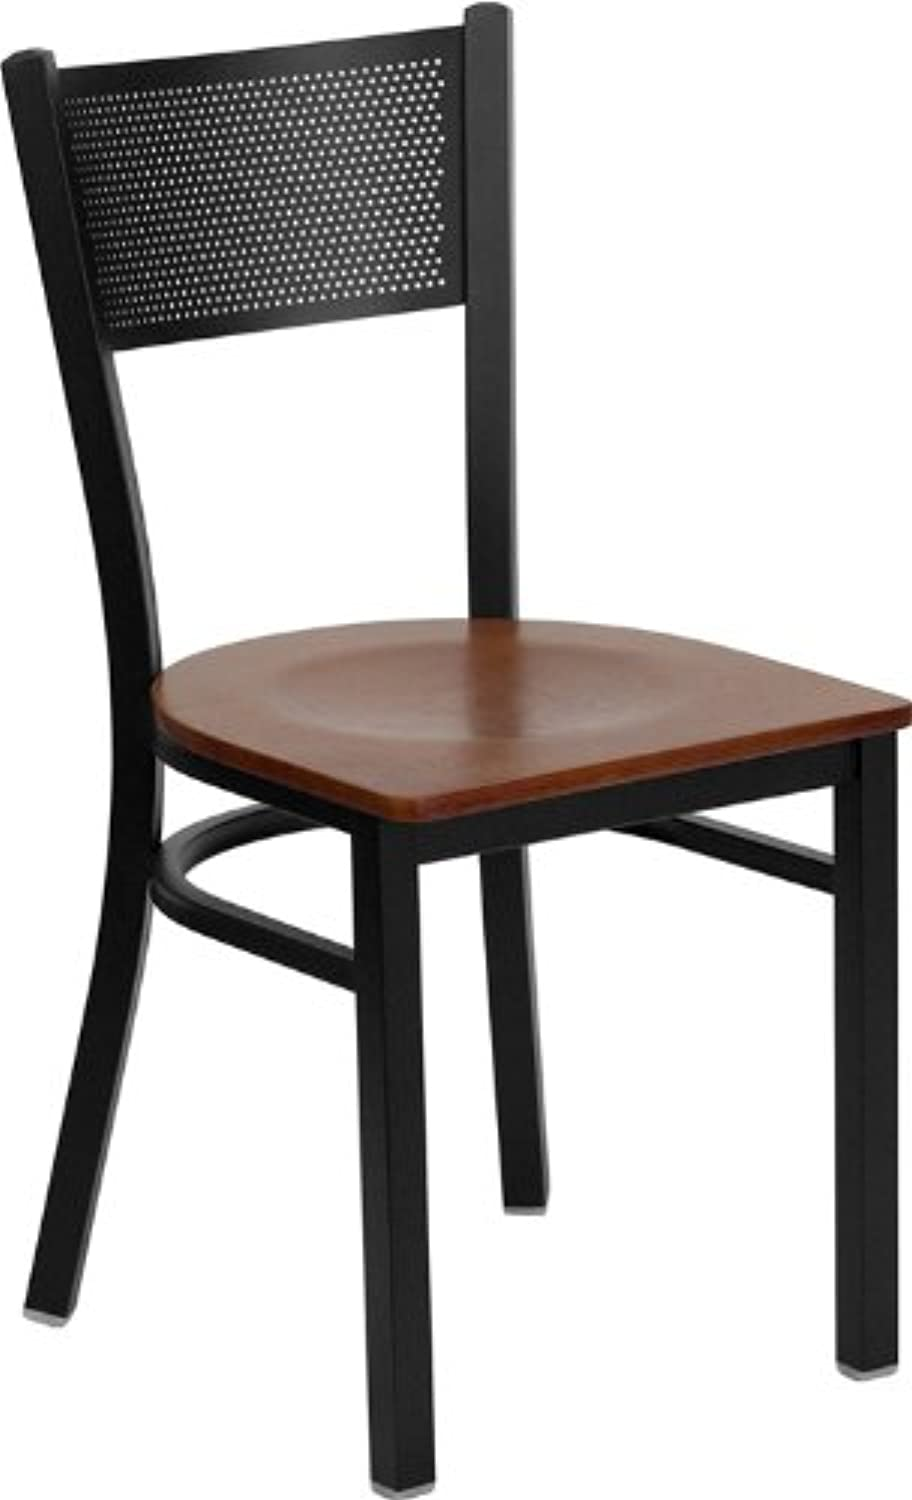 Flash Furniture HERCULES Series Black Grid Back Metal Restaurant Chair - Cherry Wood Seat